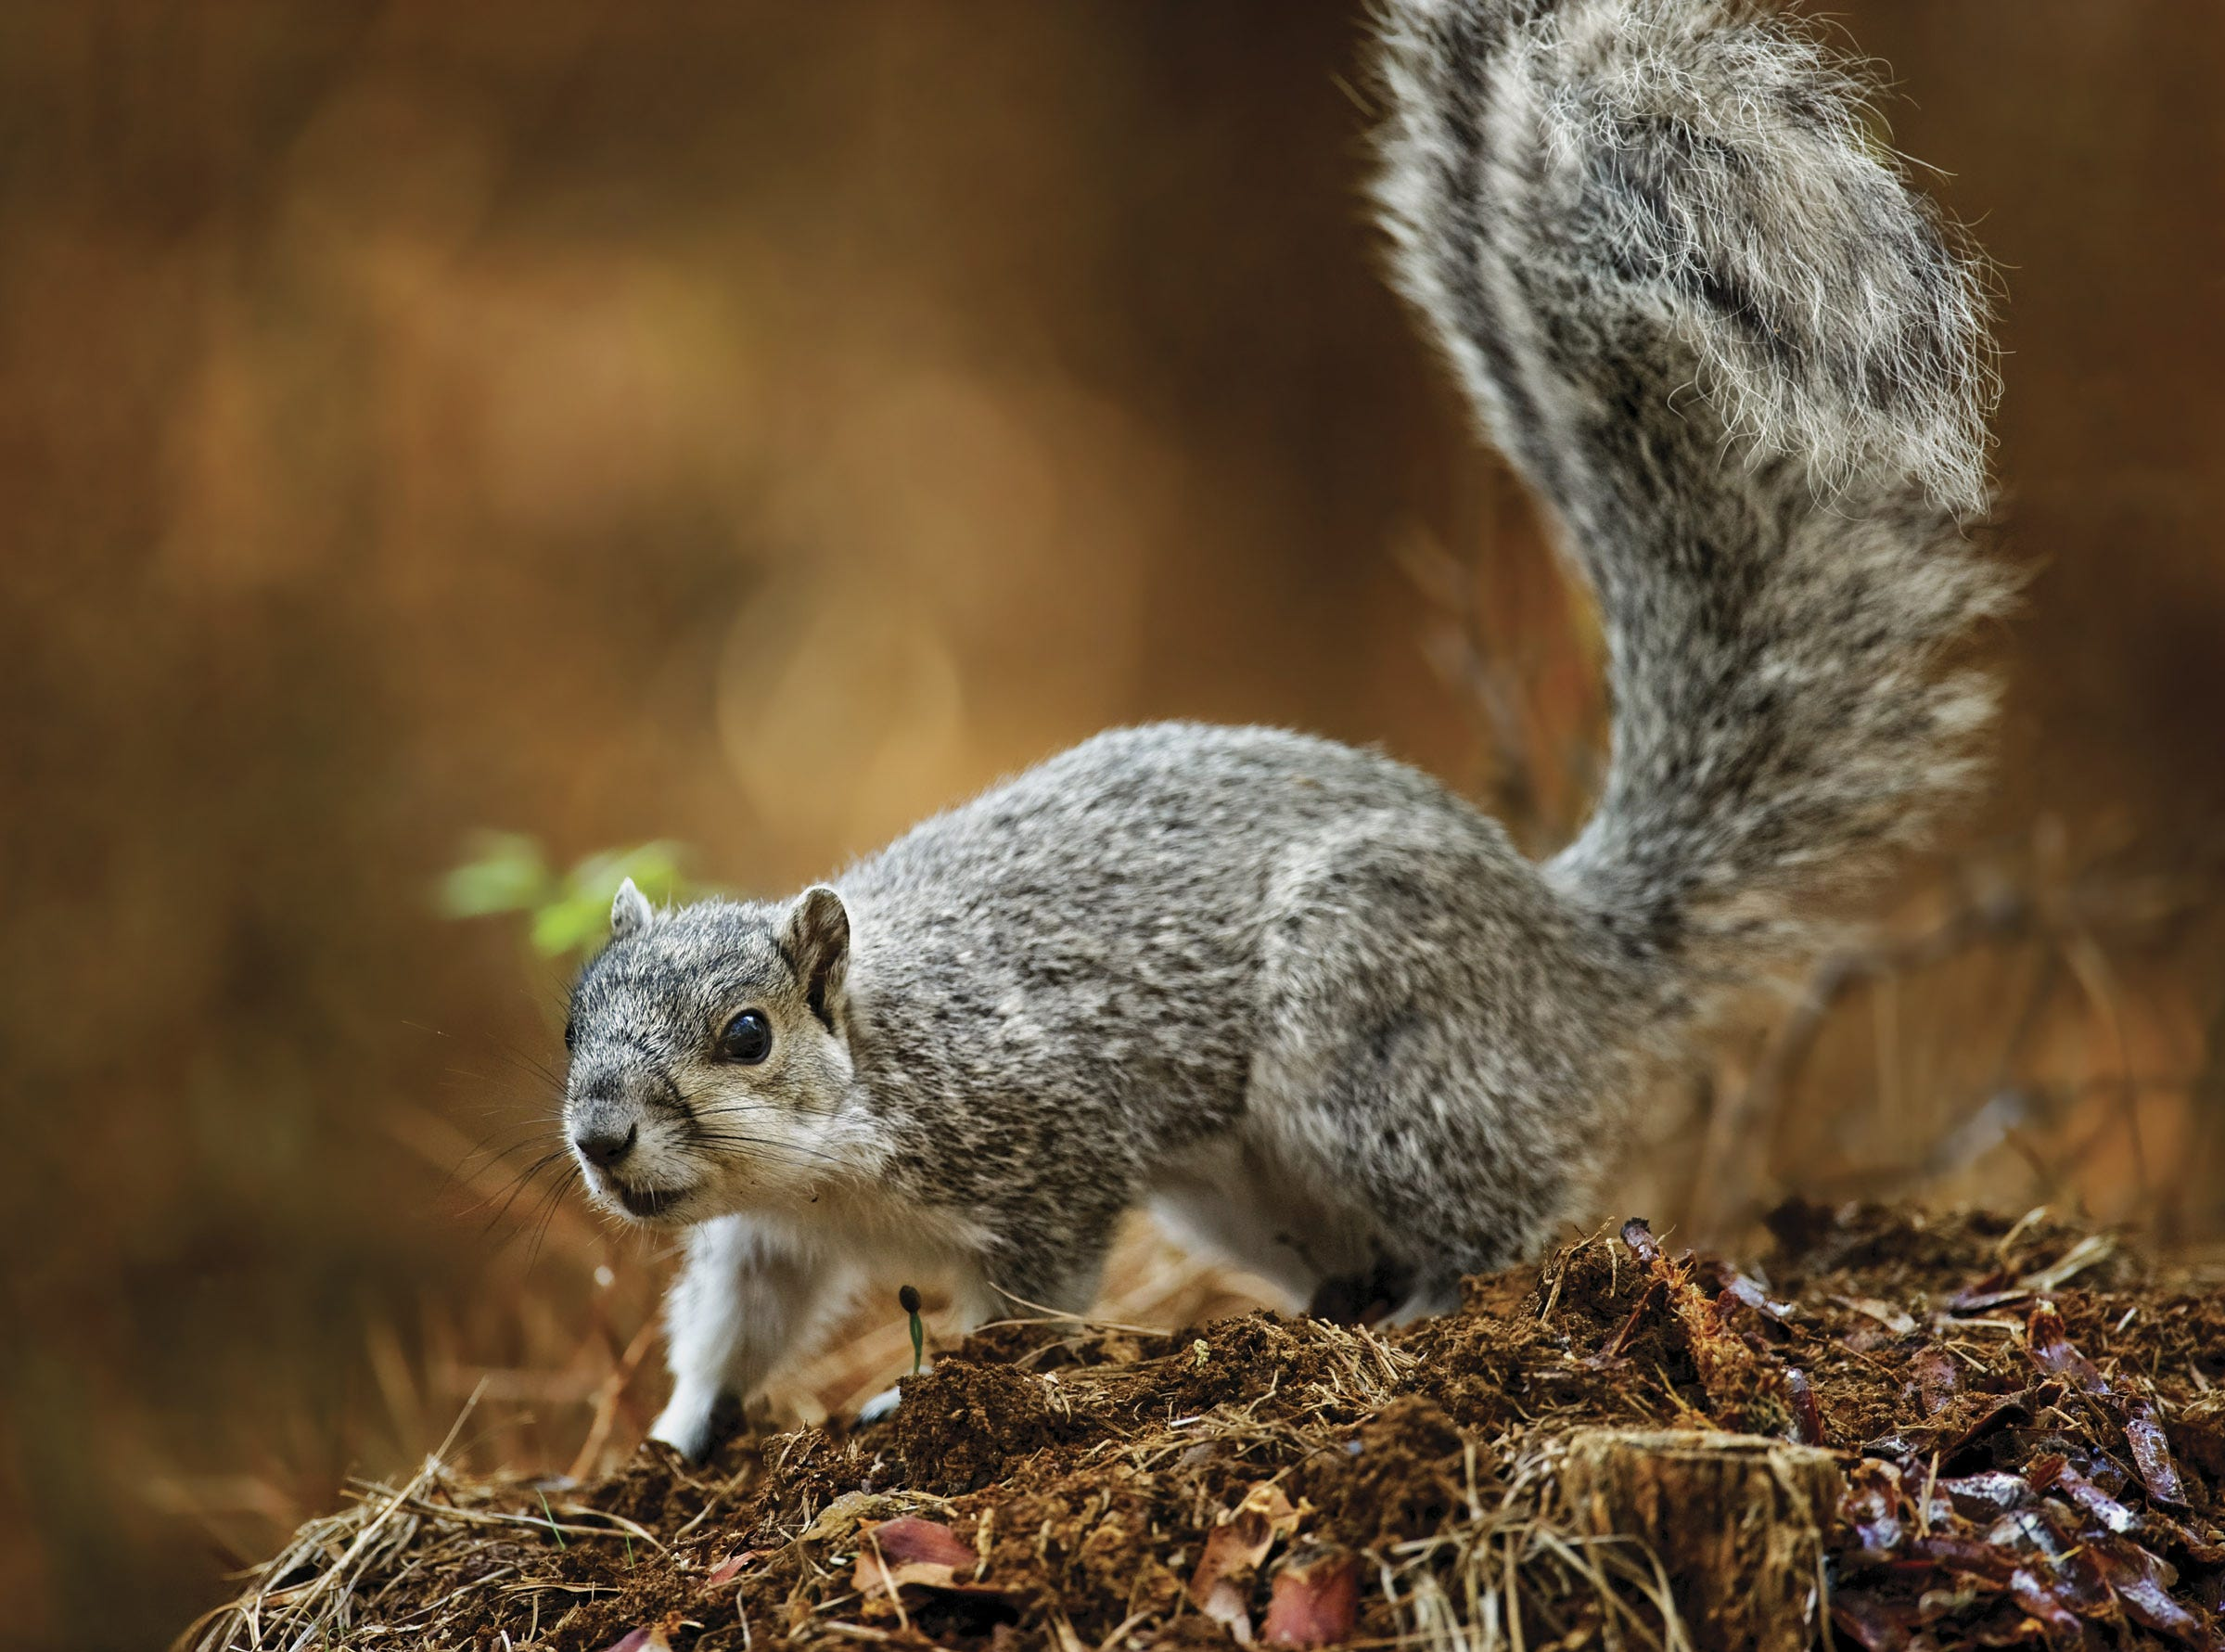 Delaware alphabet: D is for the Delmarva fox squirrel. It disappeared from Delaware and had to be reintroduced 16 times from Maryland before the population grew again.